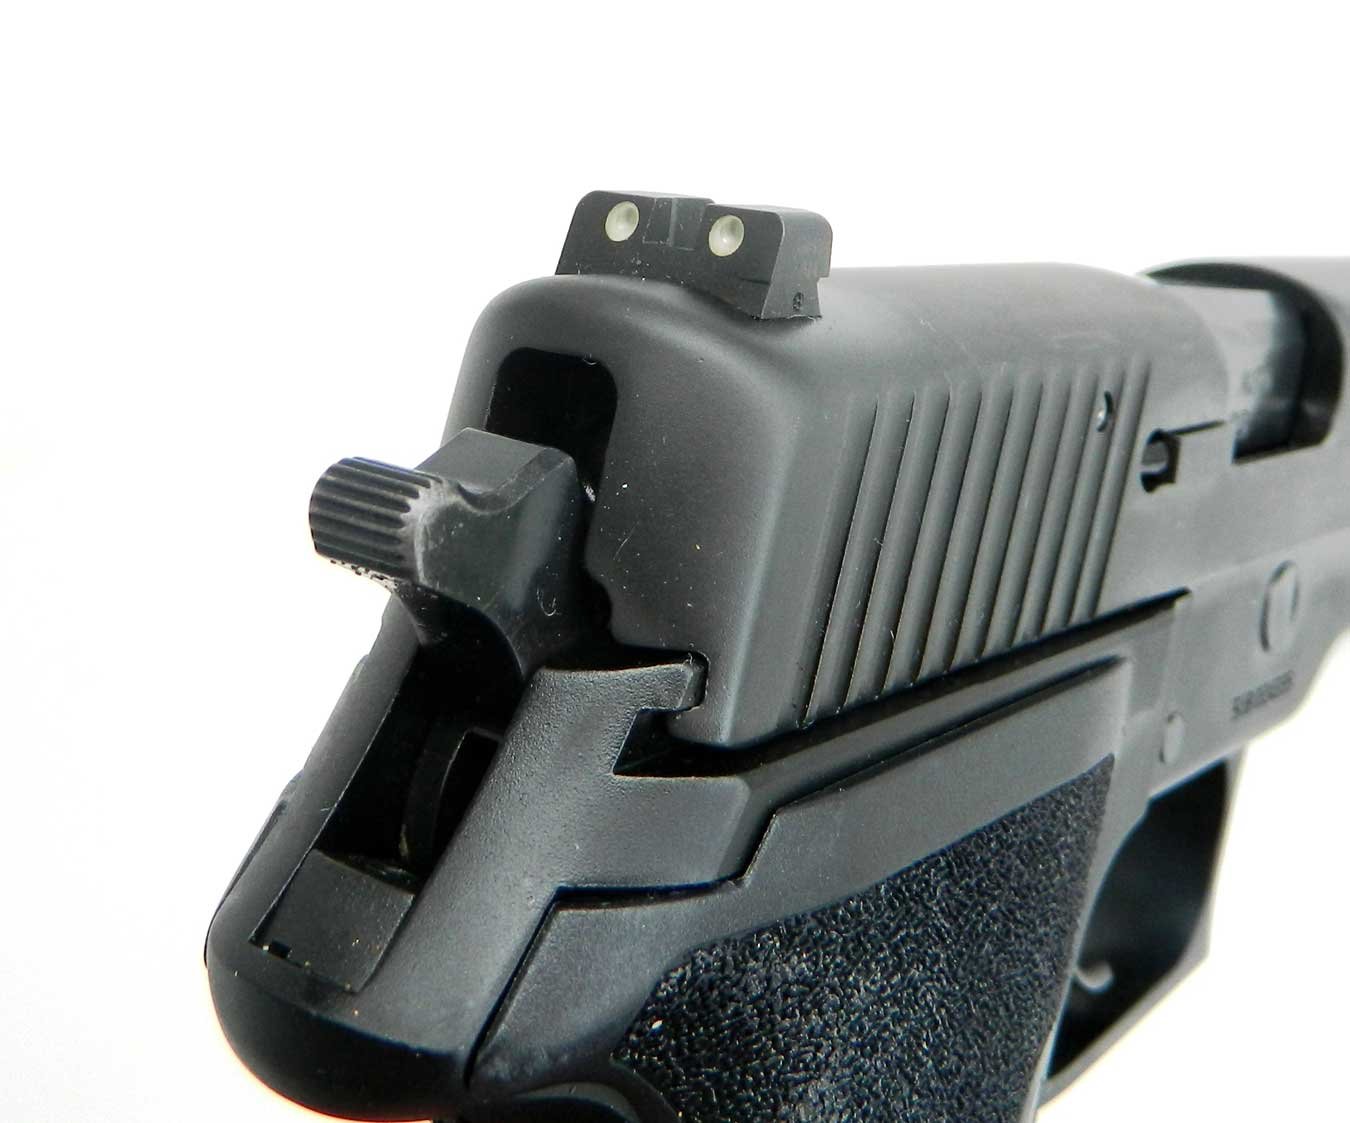 NIght sights on a SIG P227 SAS pistol